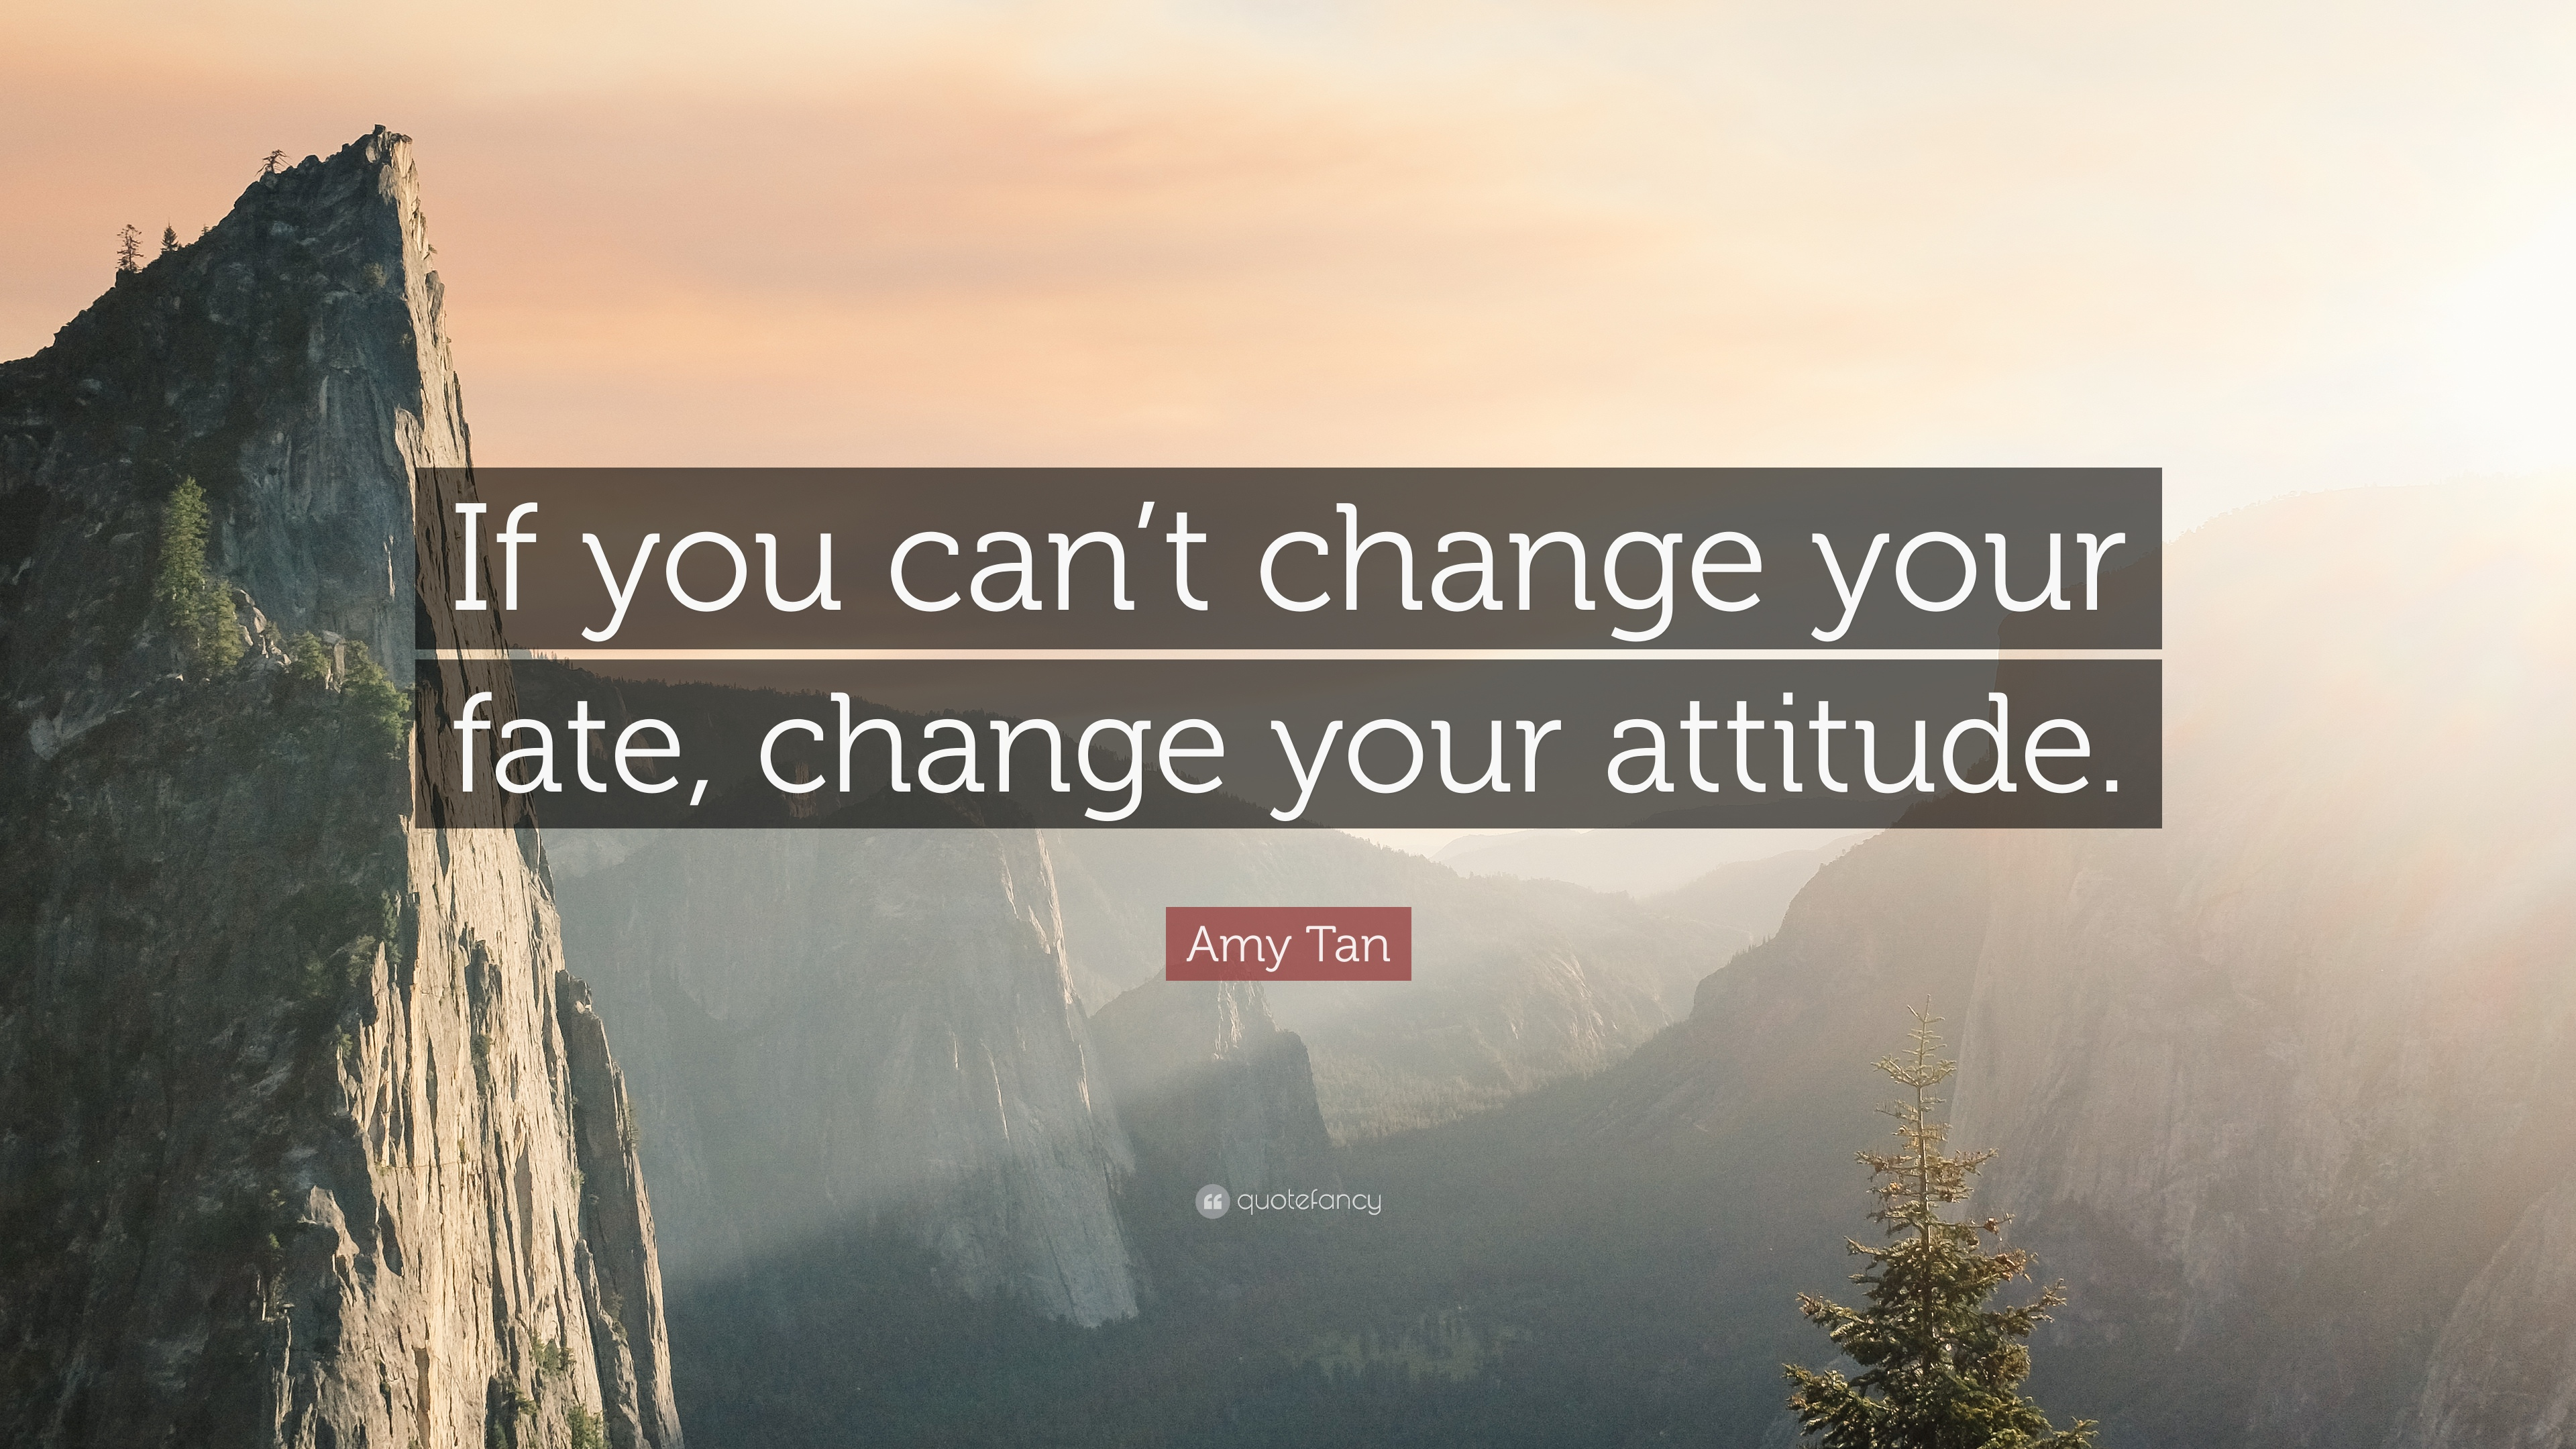 Exceptional Amy Tan Quote: U201cIf You Canu0027t Change Your Fate, Change Your